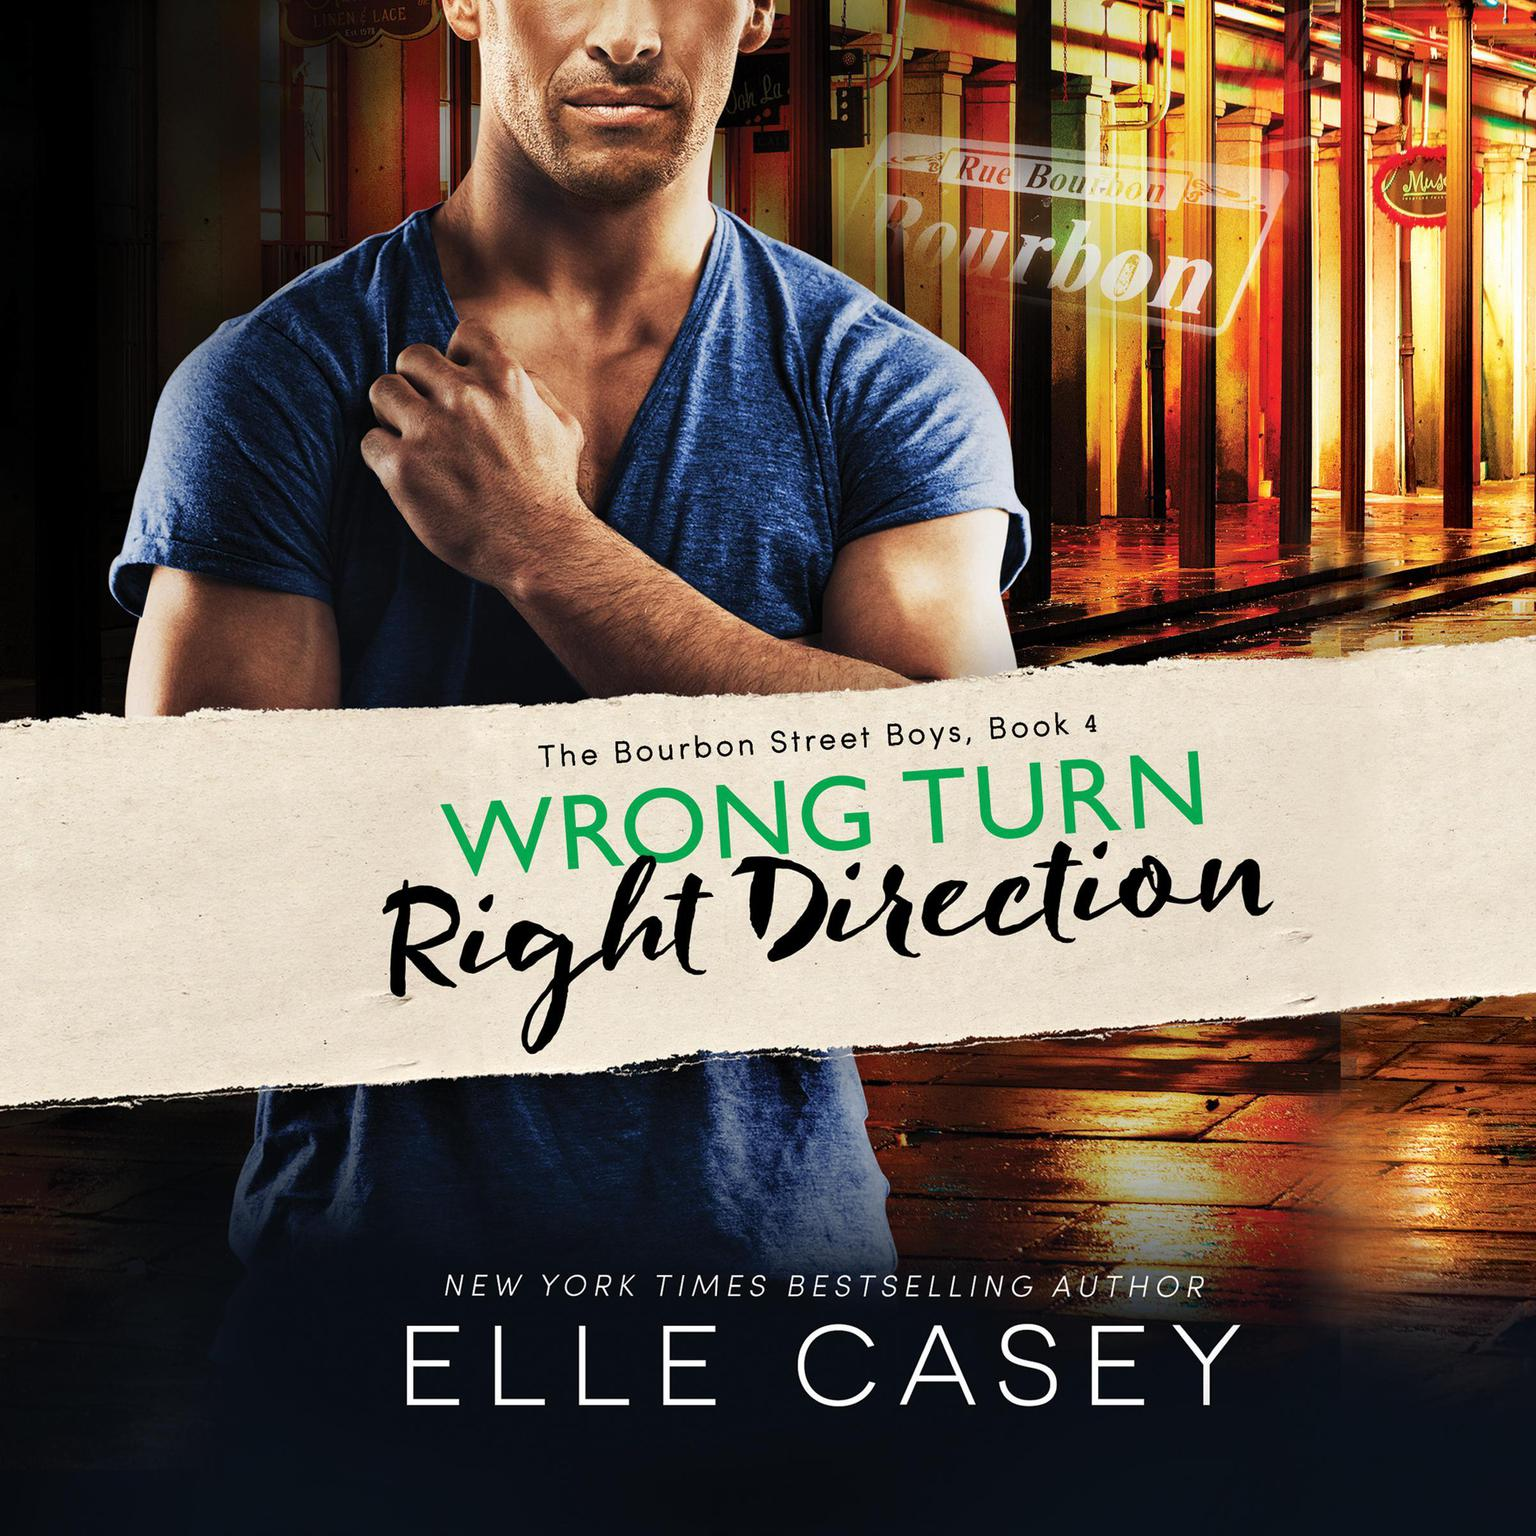 Wrong Turn, Right Direction Audiobook, by Elle Casey